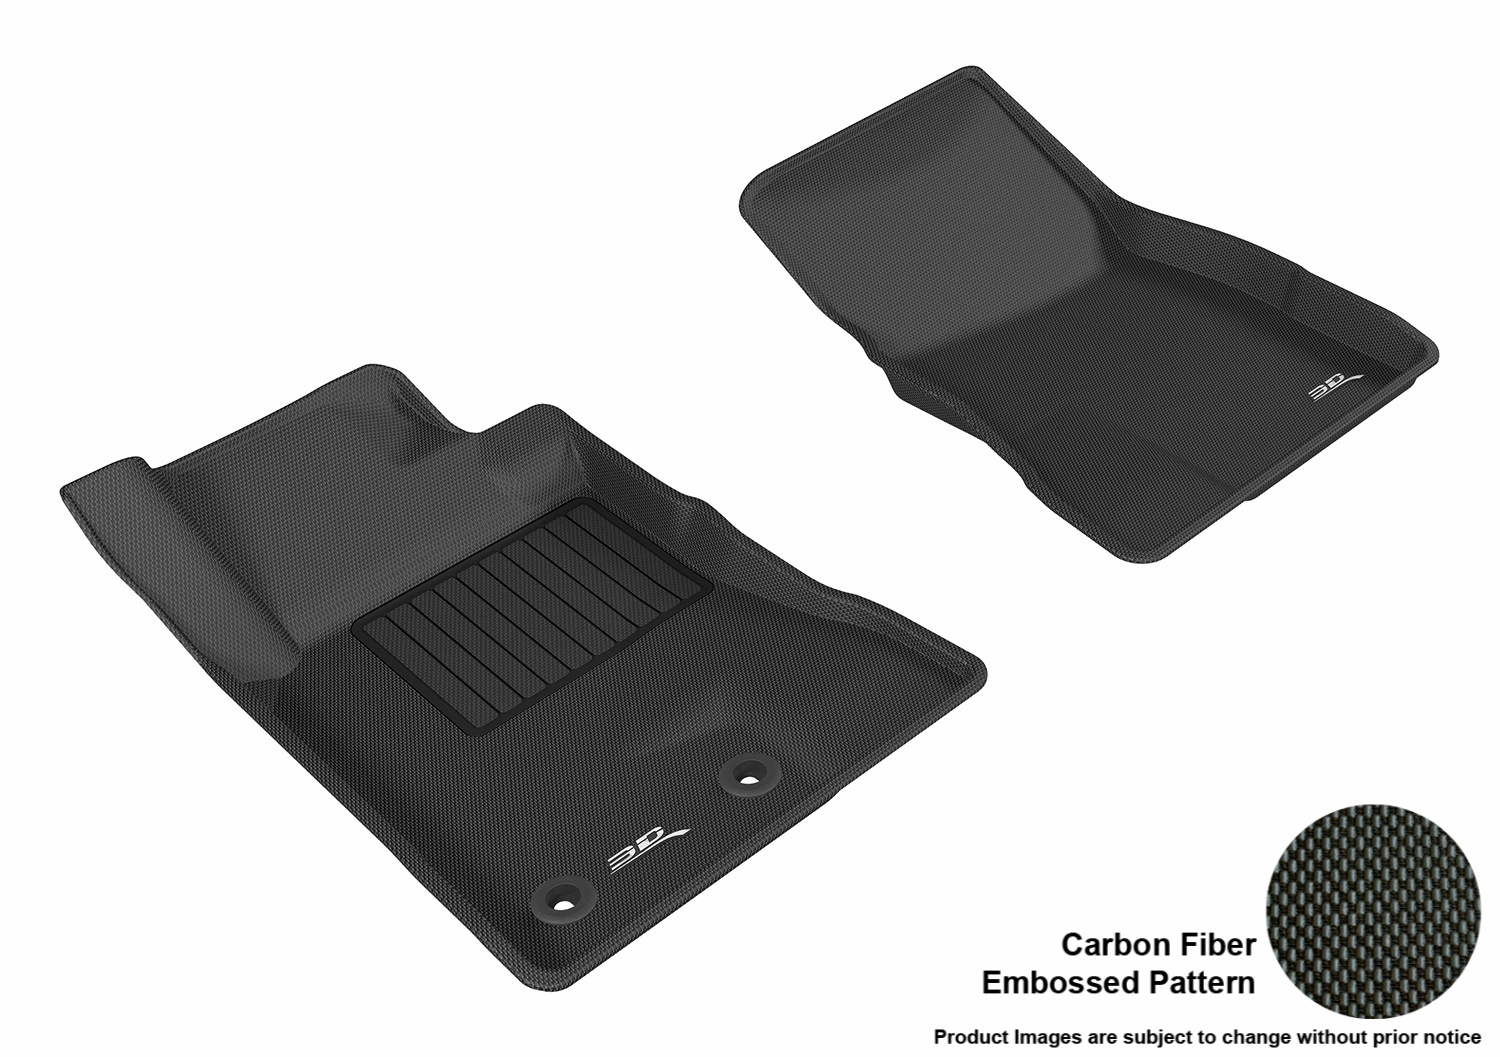 Floor Mats For A 2018 Ford Mustang